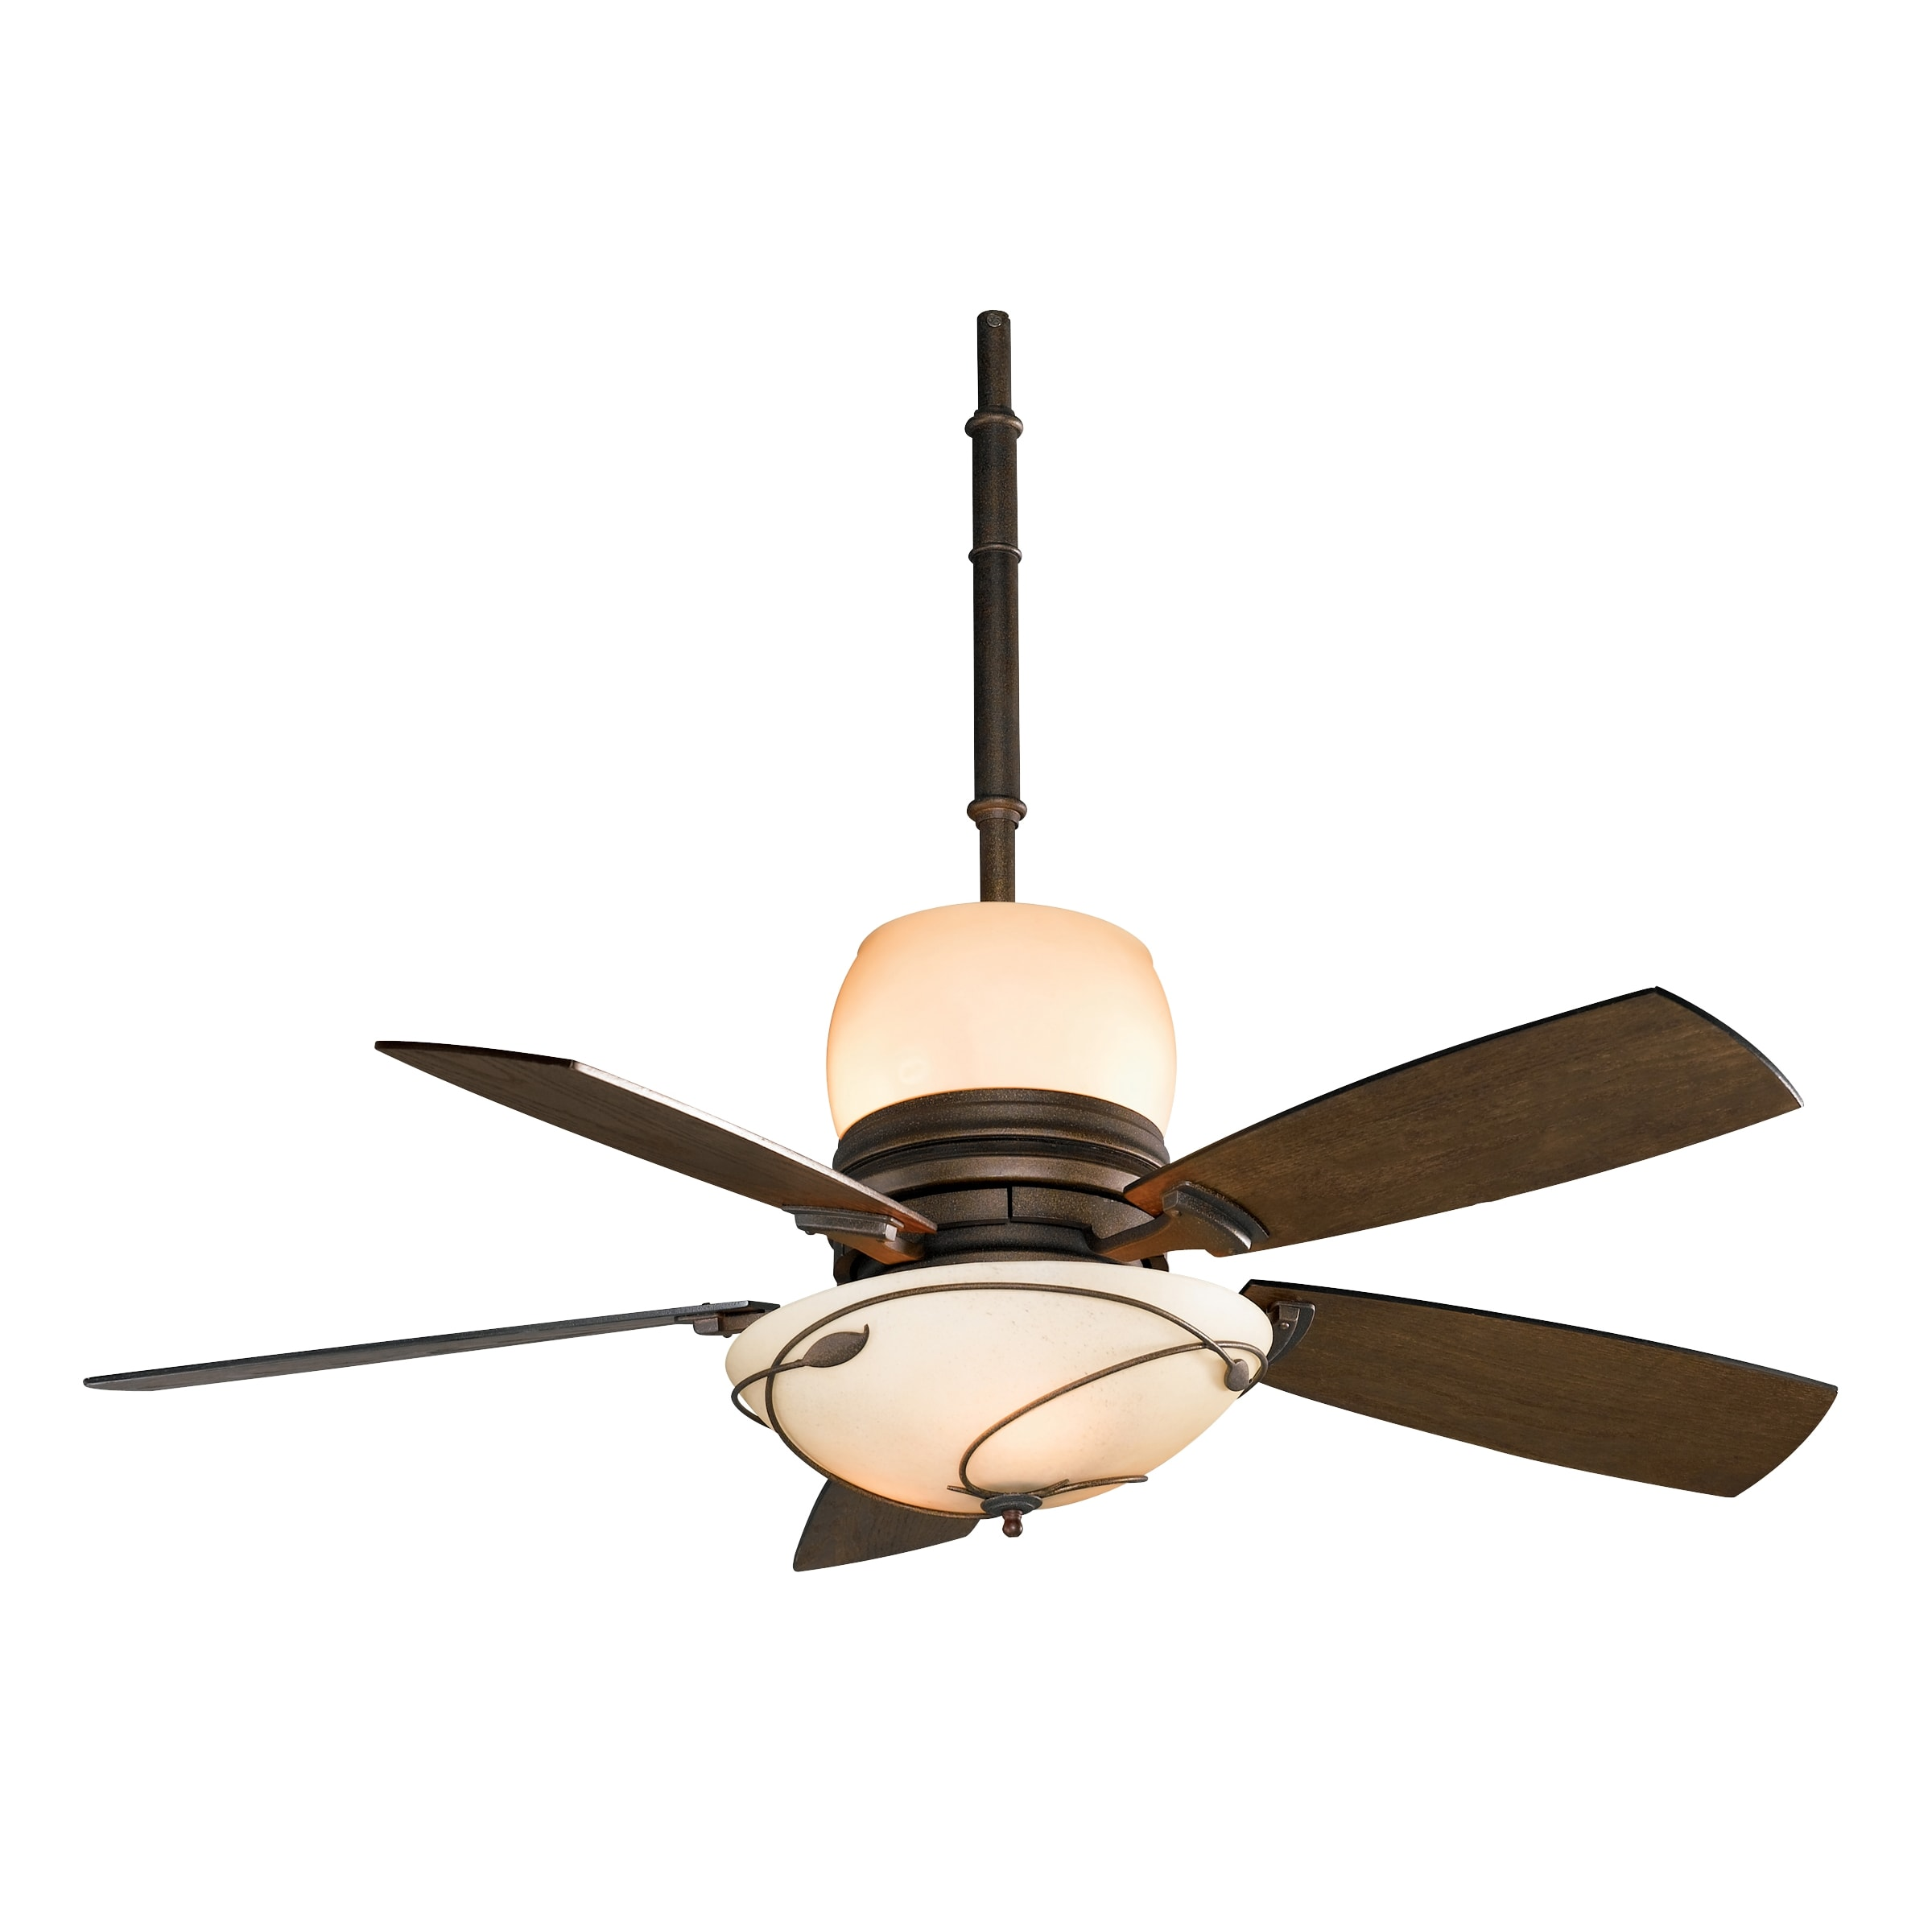 Fanimation Hubbardton Forge Leaf 54-inch Bronze Ceiling Fan at Sears.com